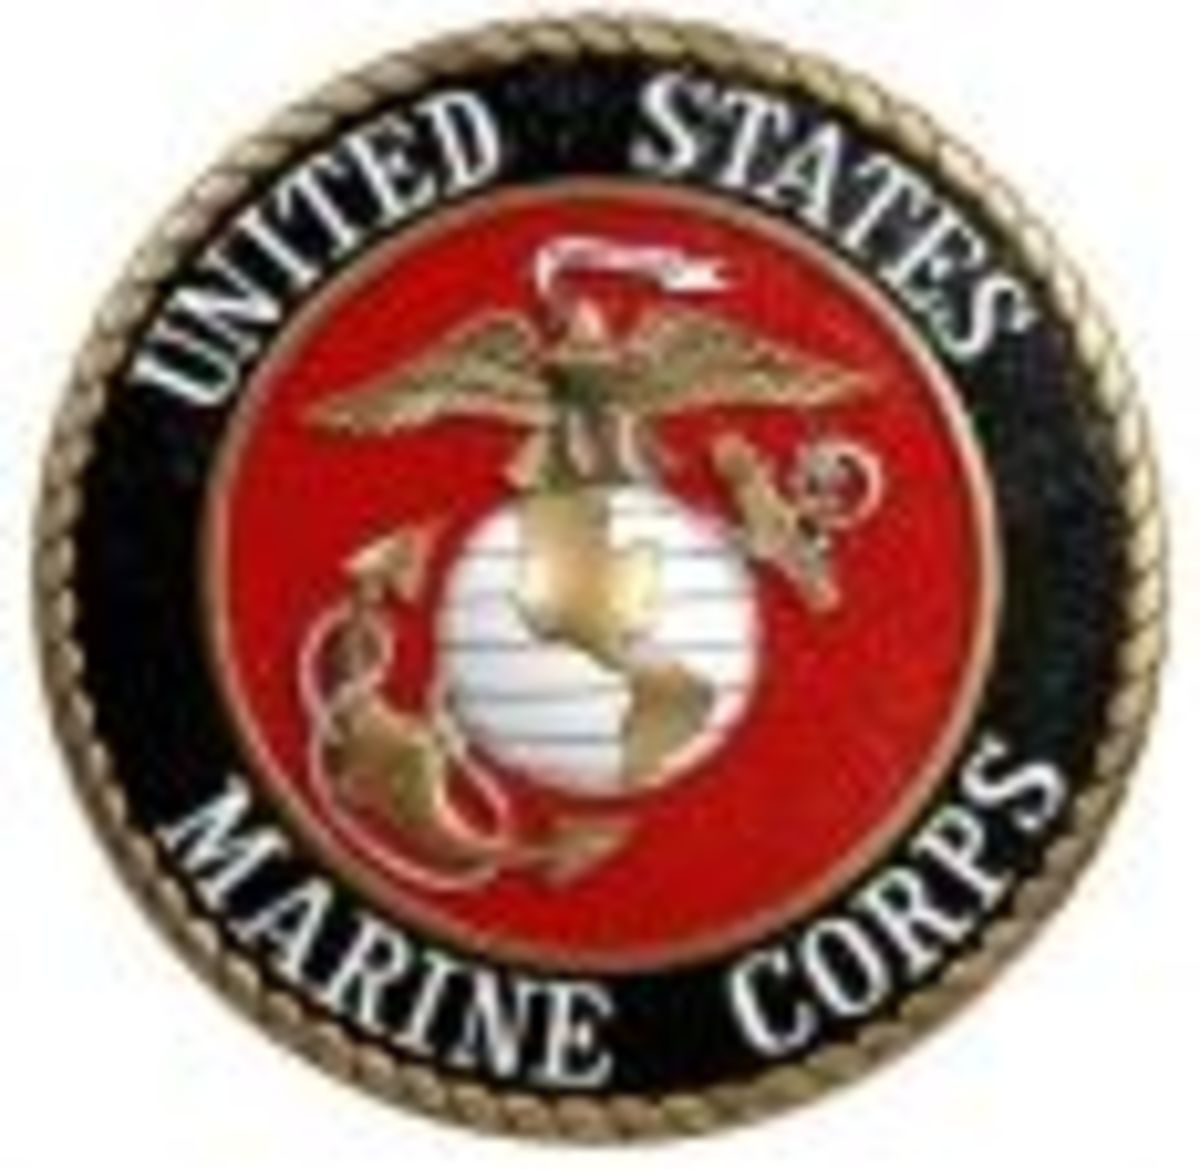 Marine Bootcamp, The Real Deal